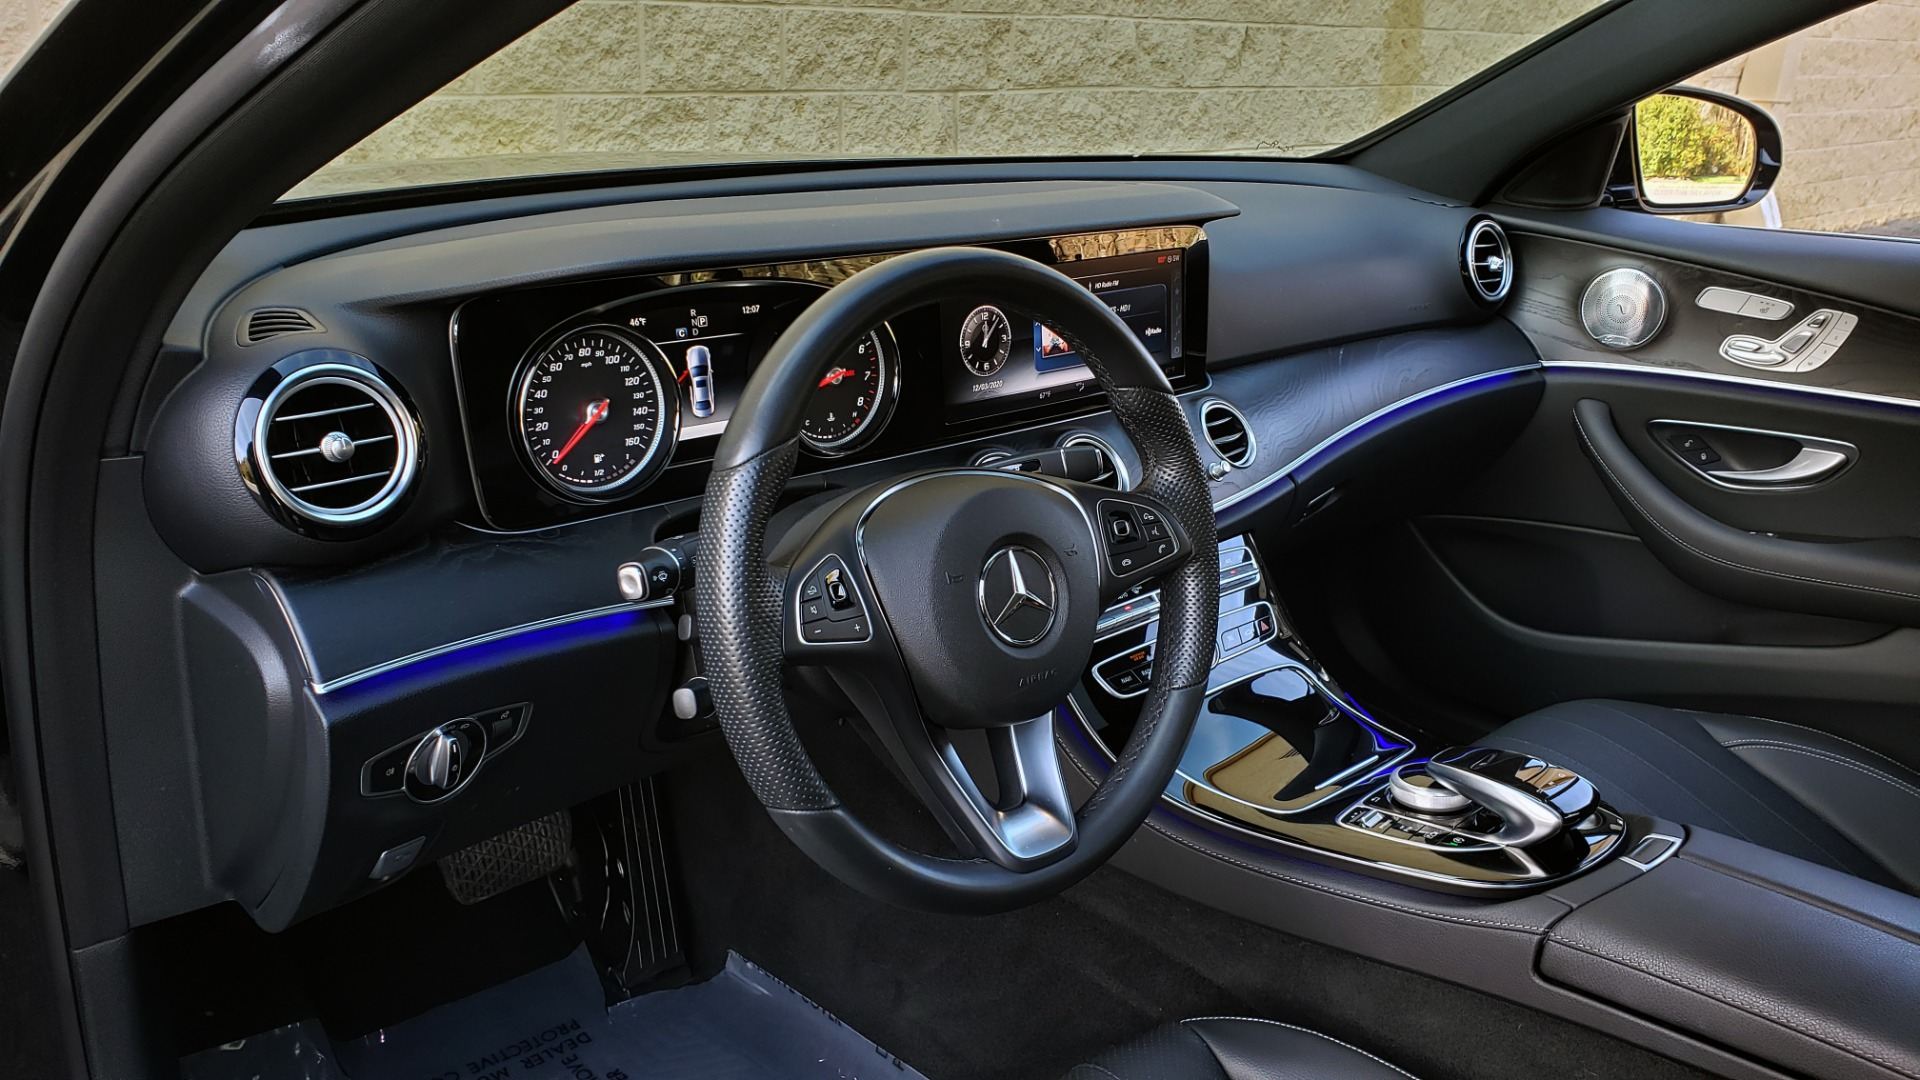 Used 2017 Mercedes-Benz E-CLASS E 300 PREMIUM / NAV / SUNROOF / BURMESTER / HTD STS / REARVIEW for sale Sold at Formula Imports in Charlotte NC 28227 39